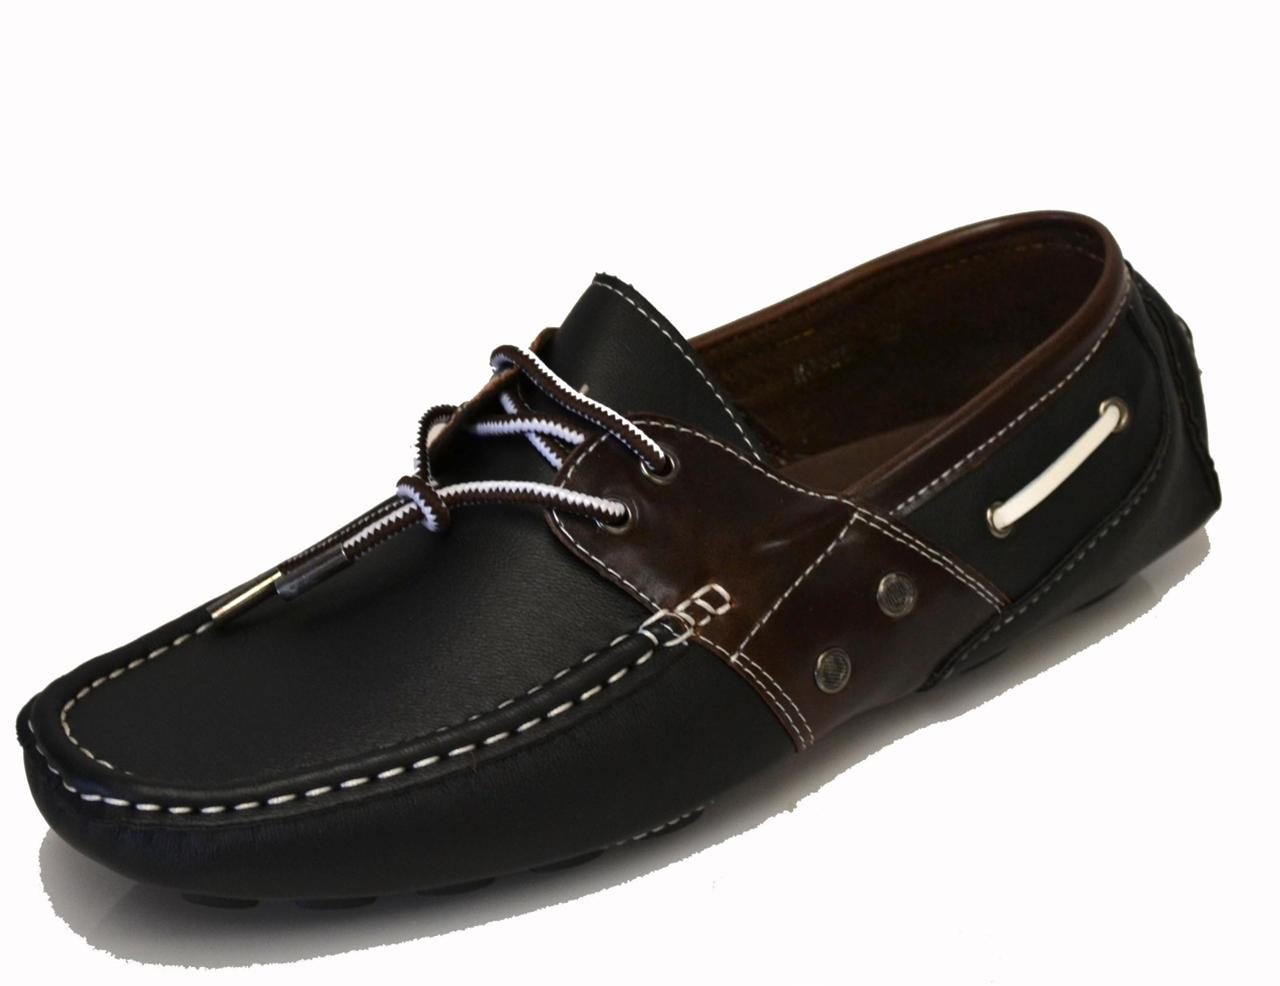 mens boat shoes black brown loafer casual oxfords